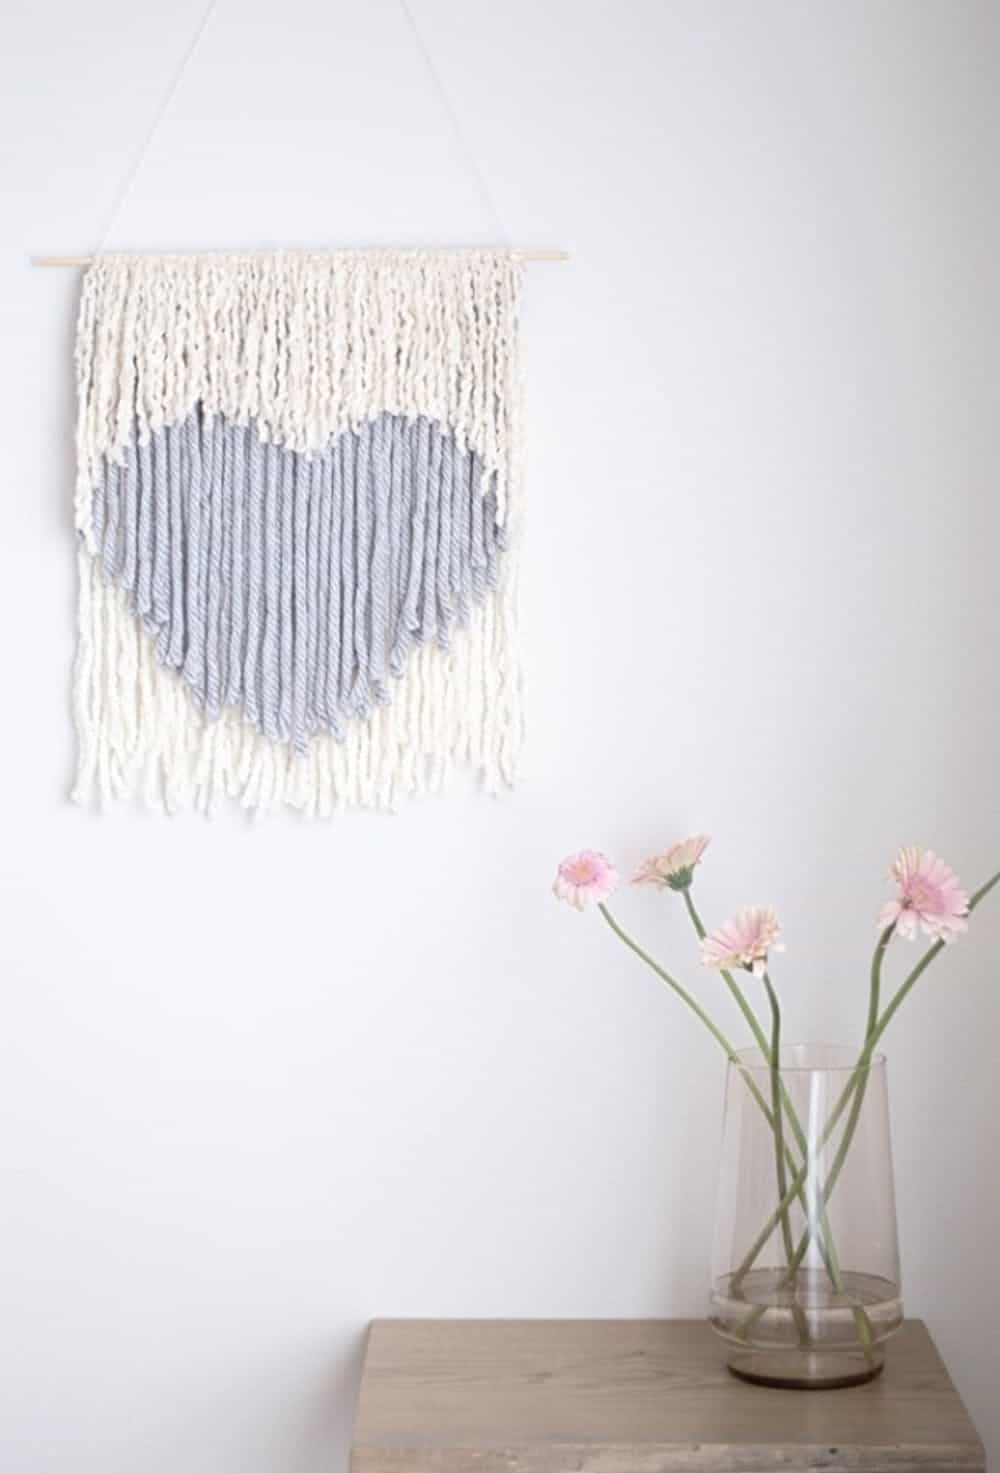 Diy heart wall hanging